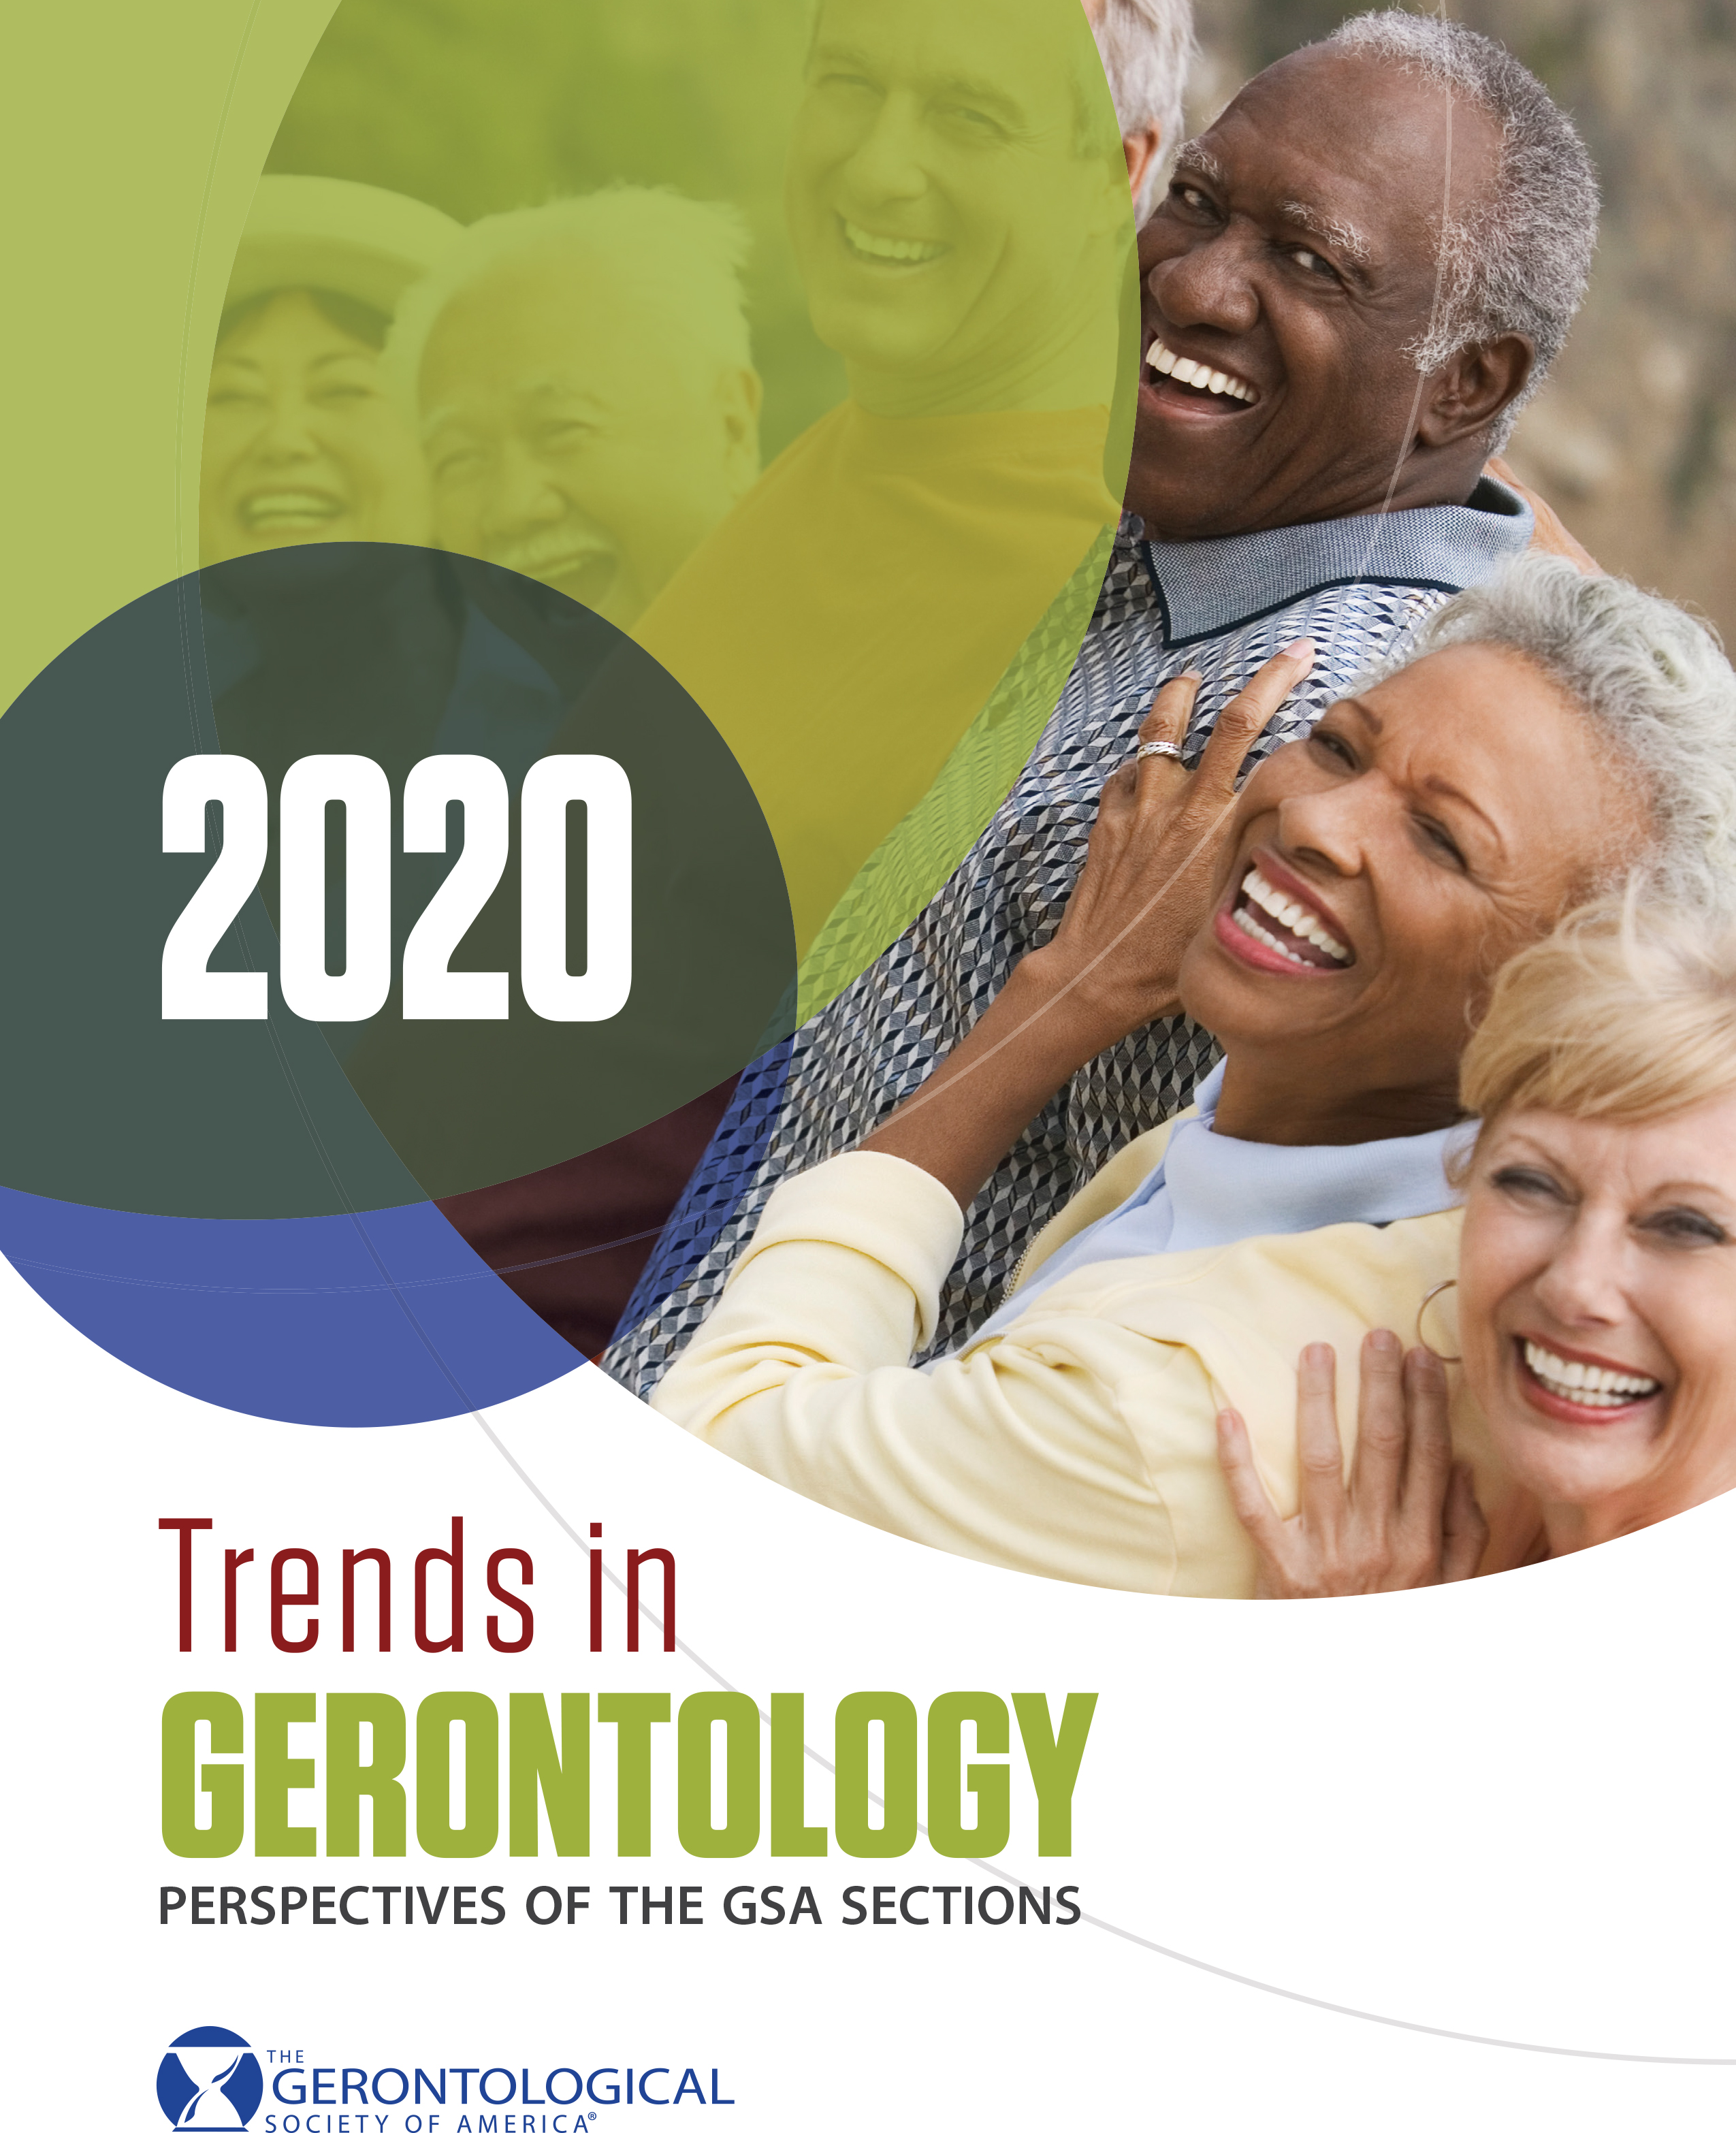 GSA 846 Trends in Aging Report 7 7 with master pages fixed 1